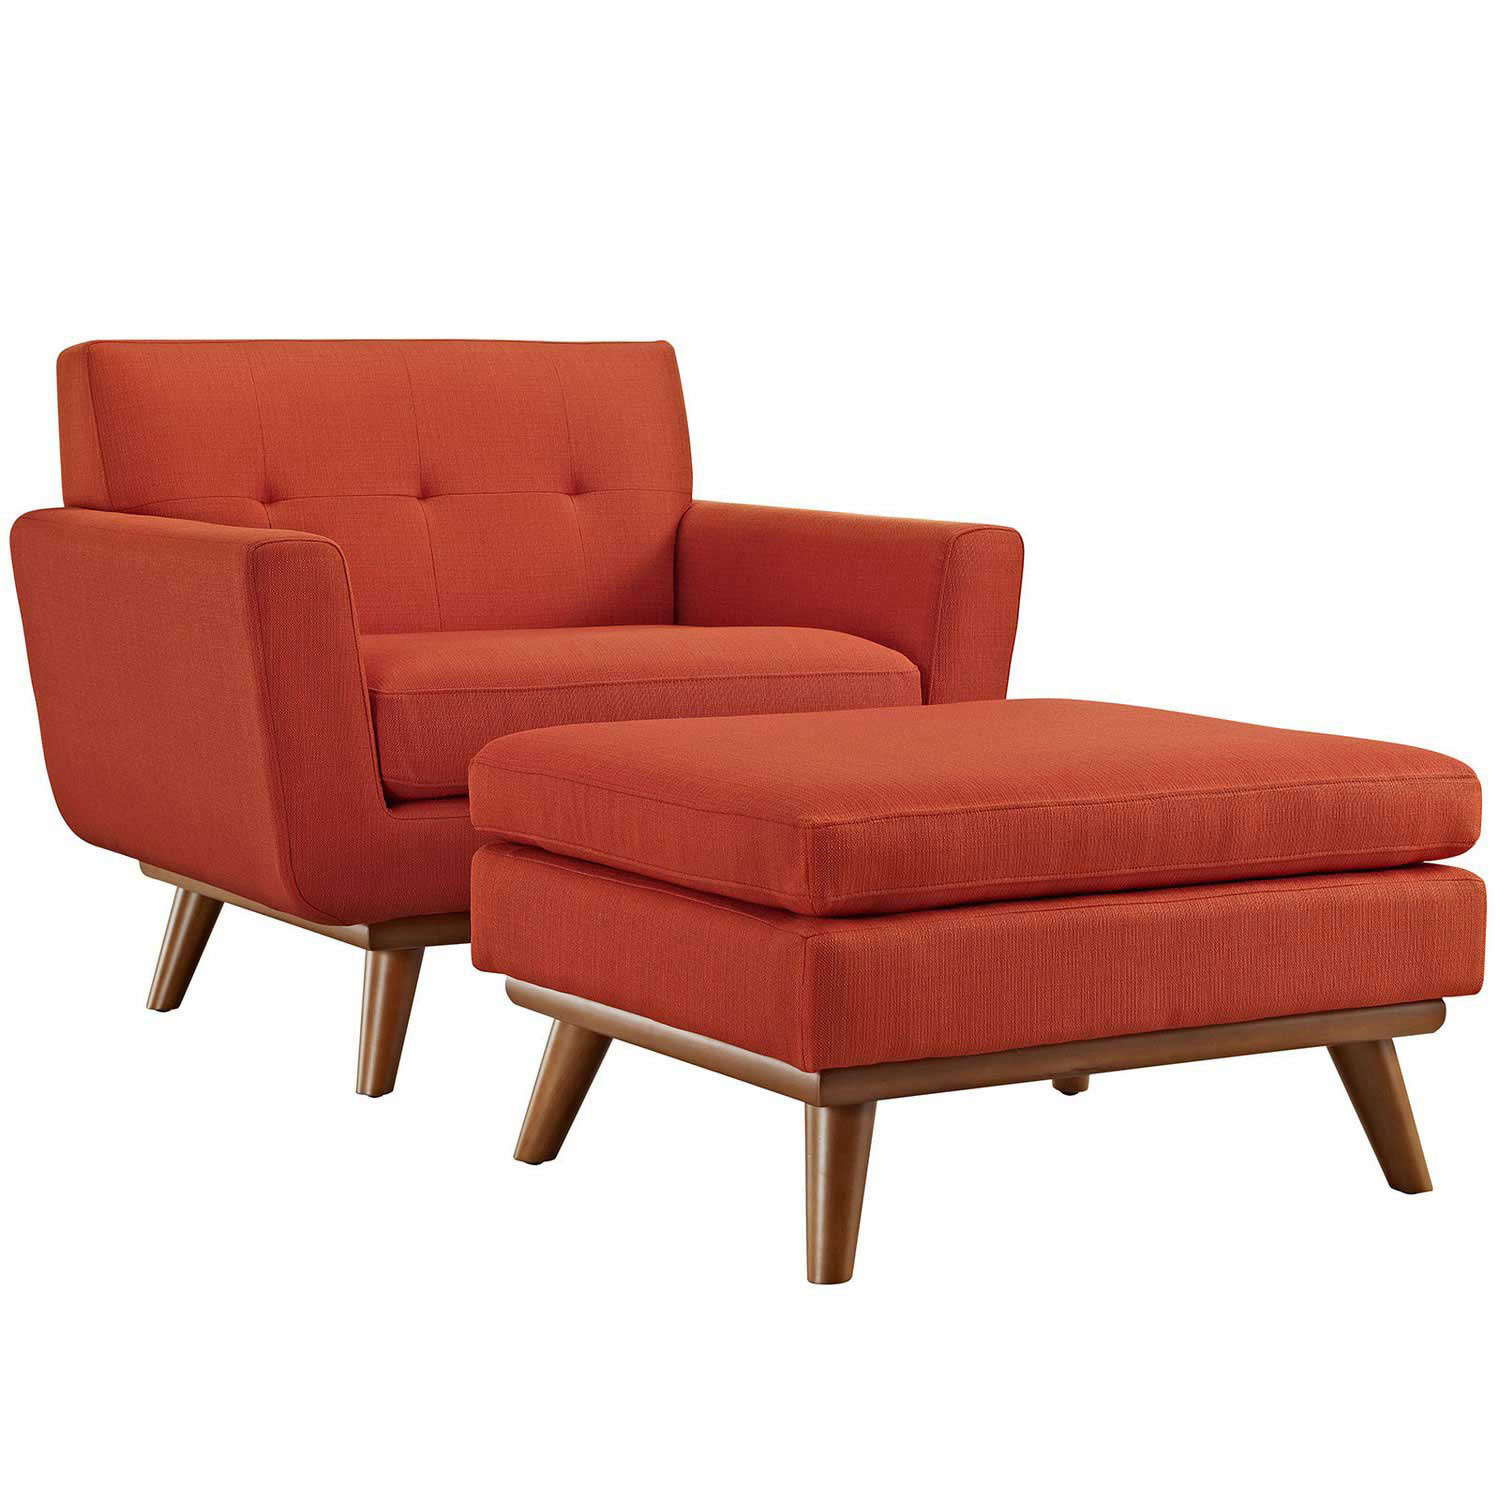 Modway Engage 2 Piece Chair and Ottoman - Atomic Red